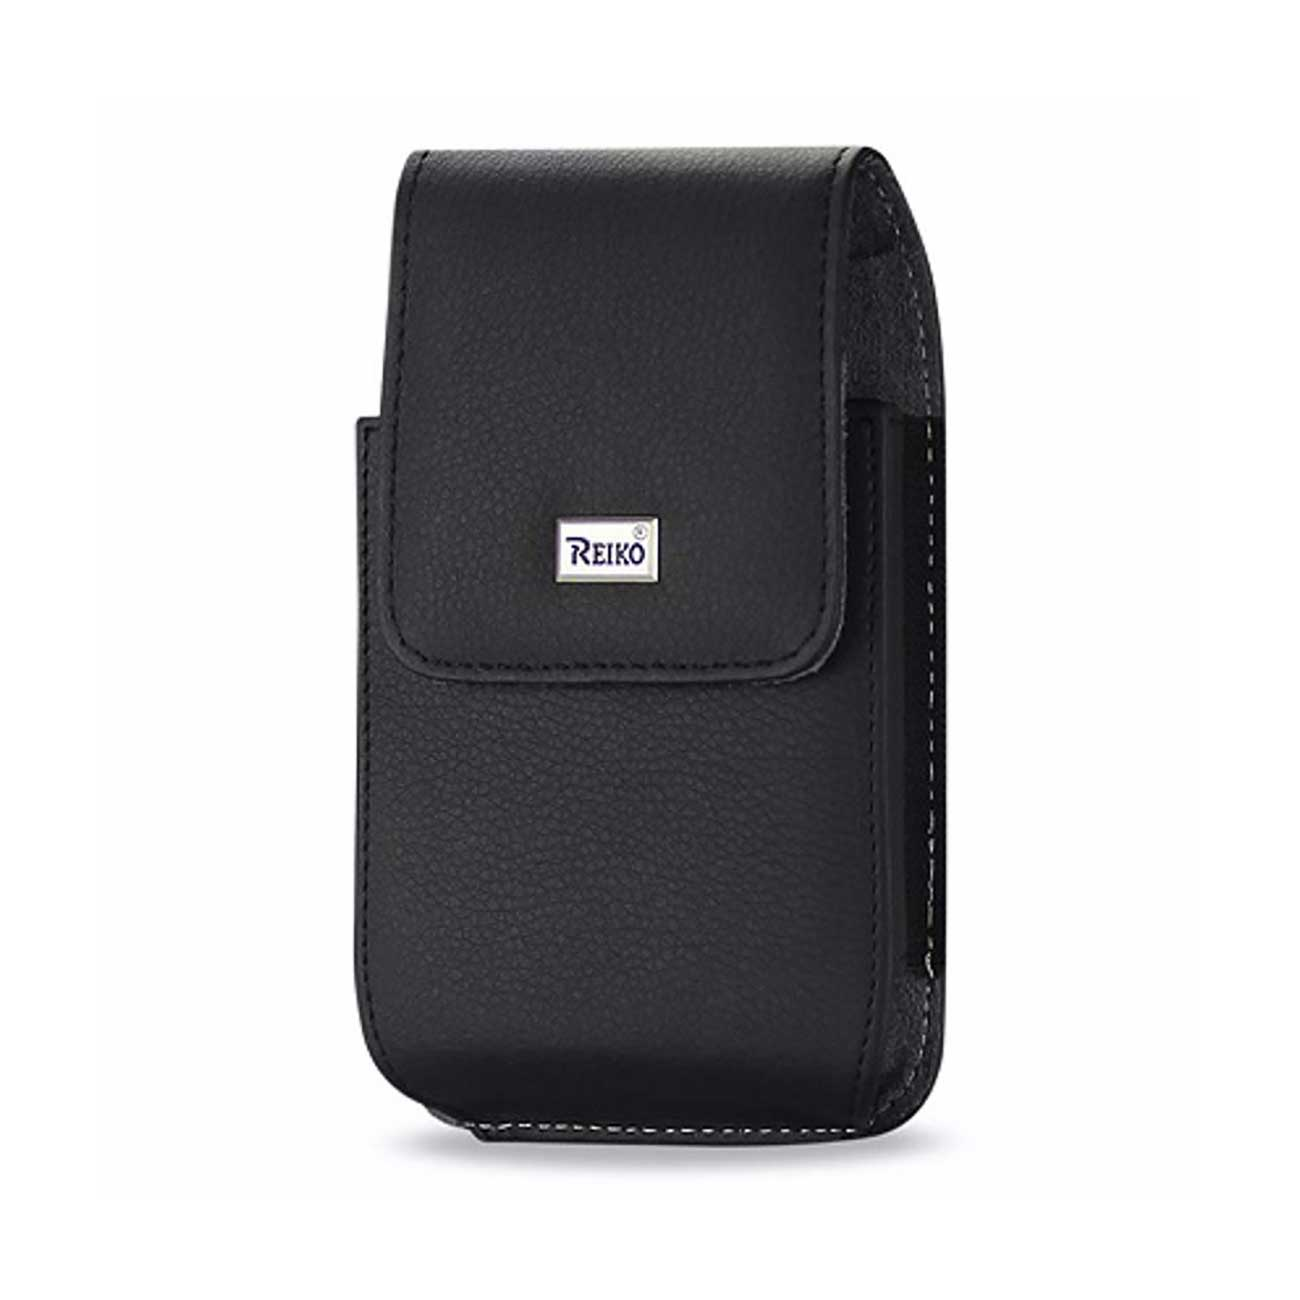 Leather Vertical Pouch With Metal Logo In Black (6.2X3.3X0.7 Inches)